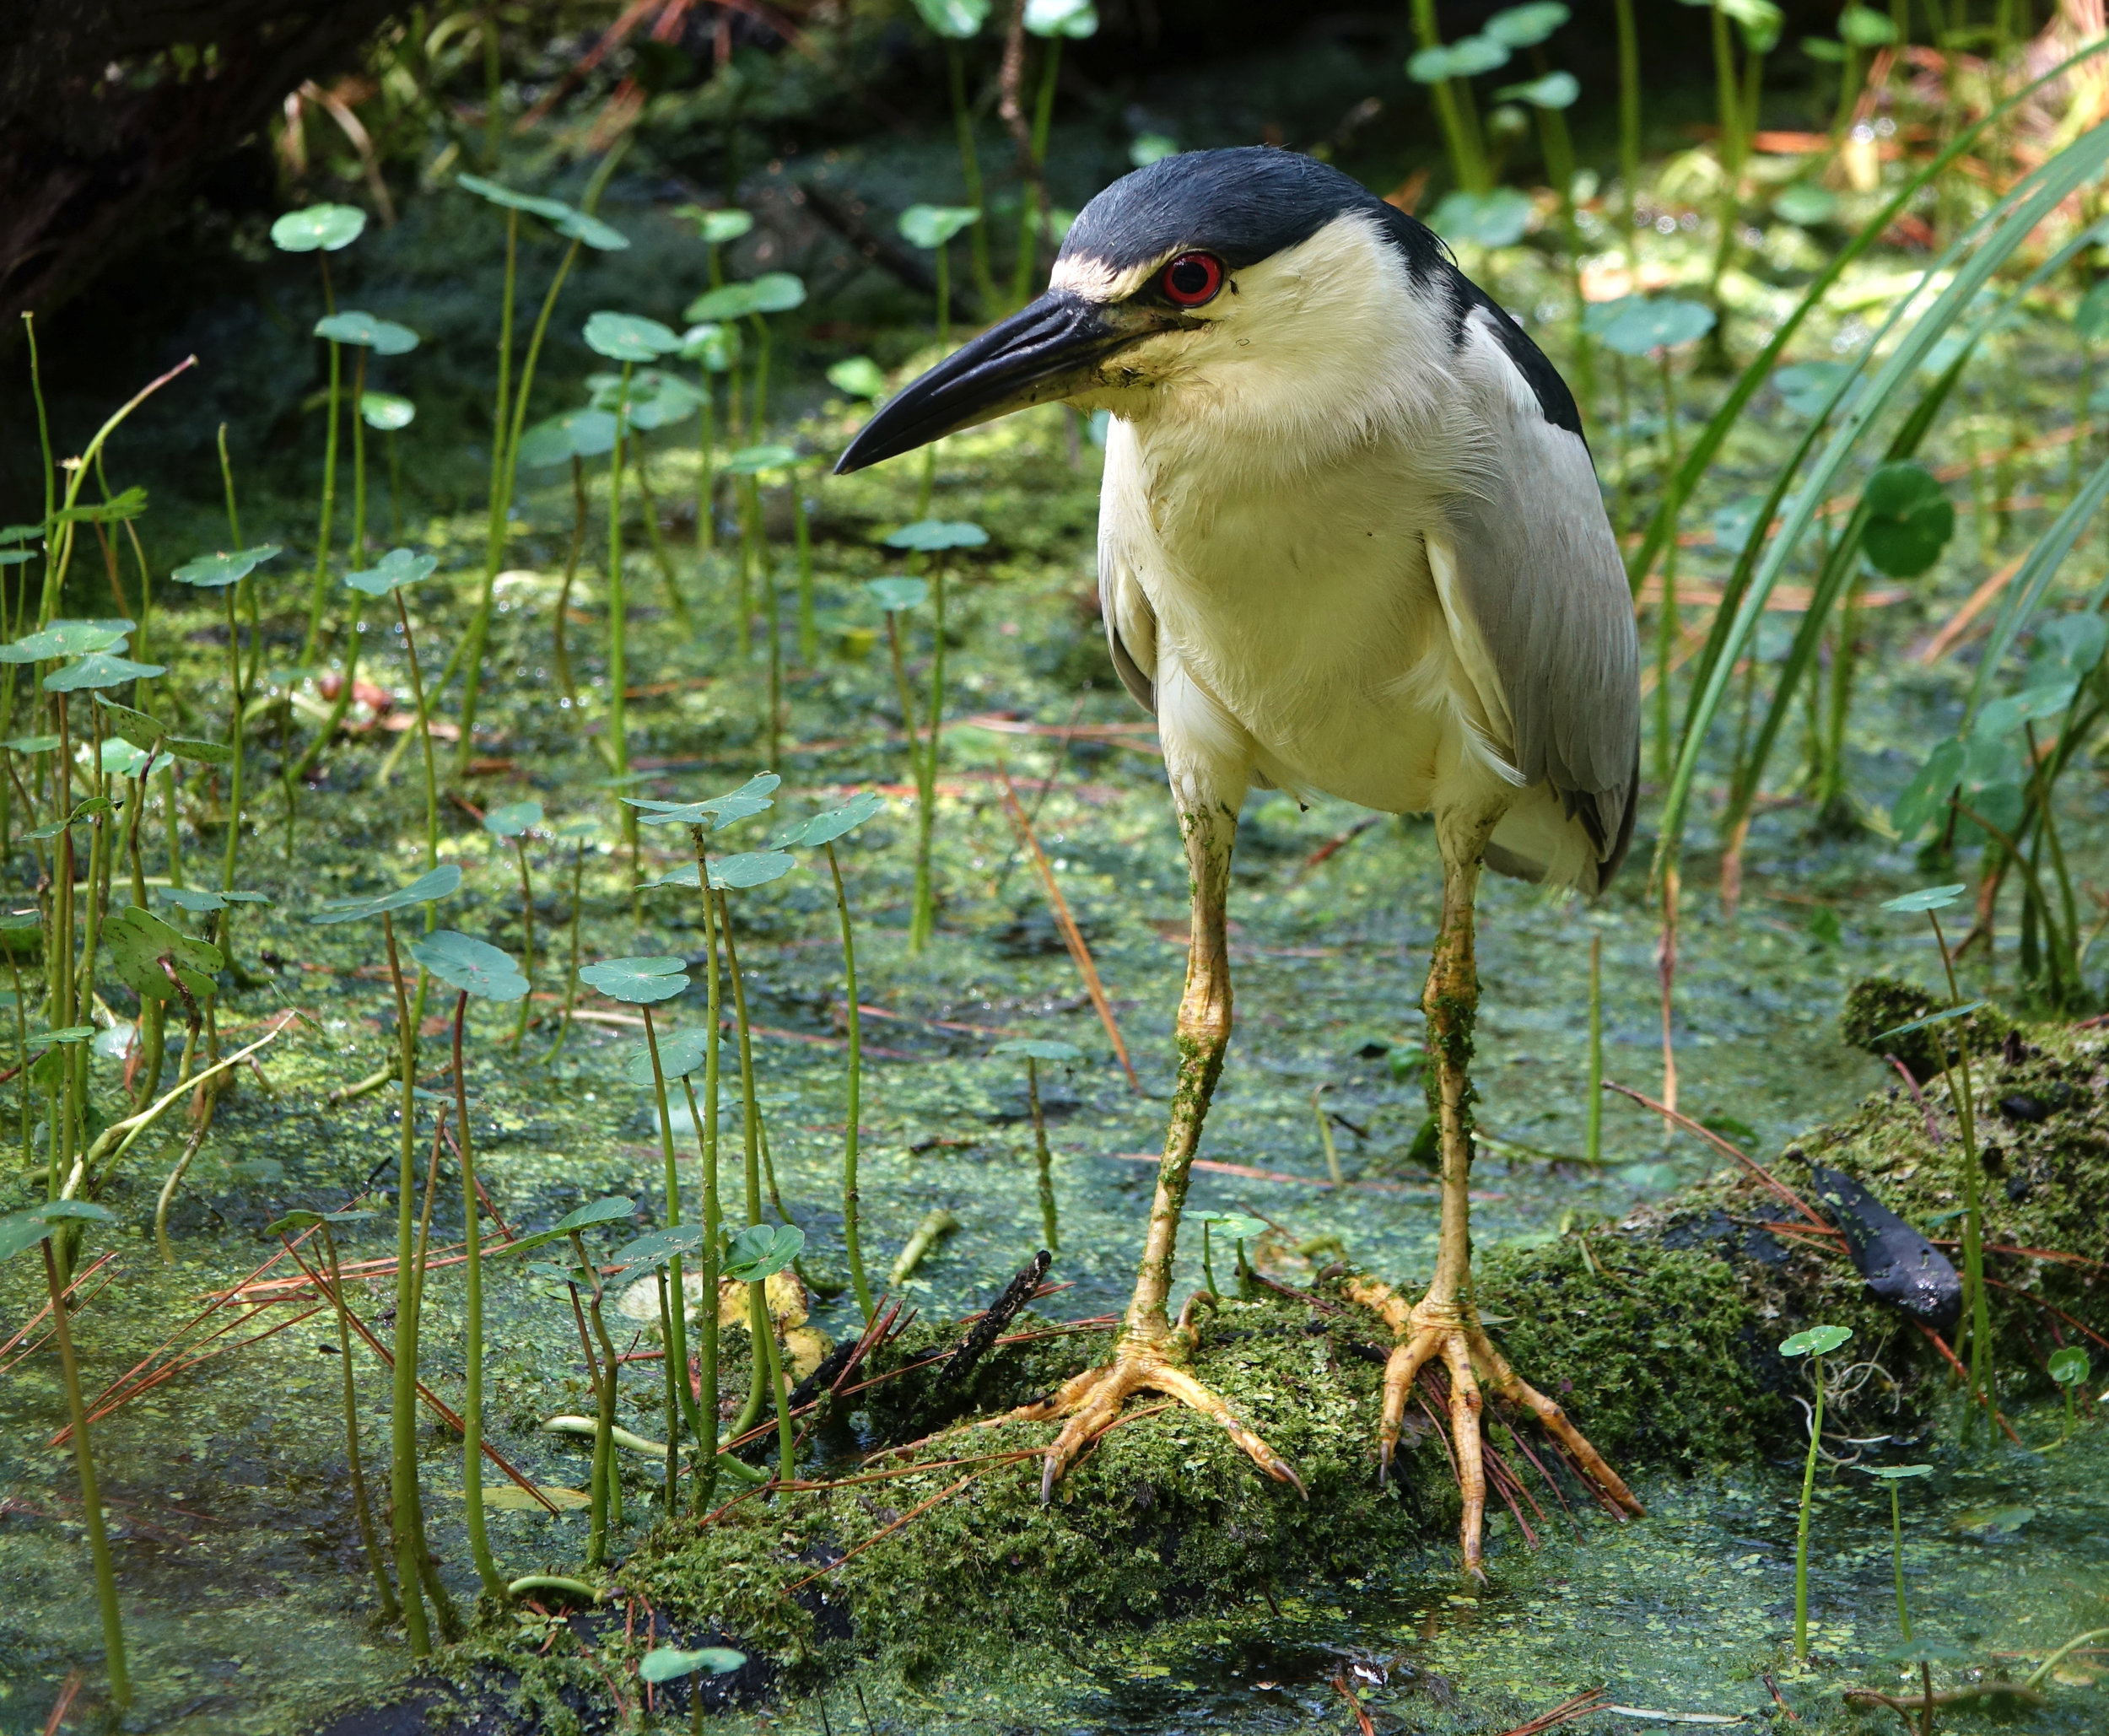 BLACK-CROWNED NIGHT HERON, ( Nycticorax nycticorax ), South Carolina, July, 2018